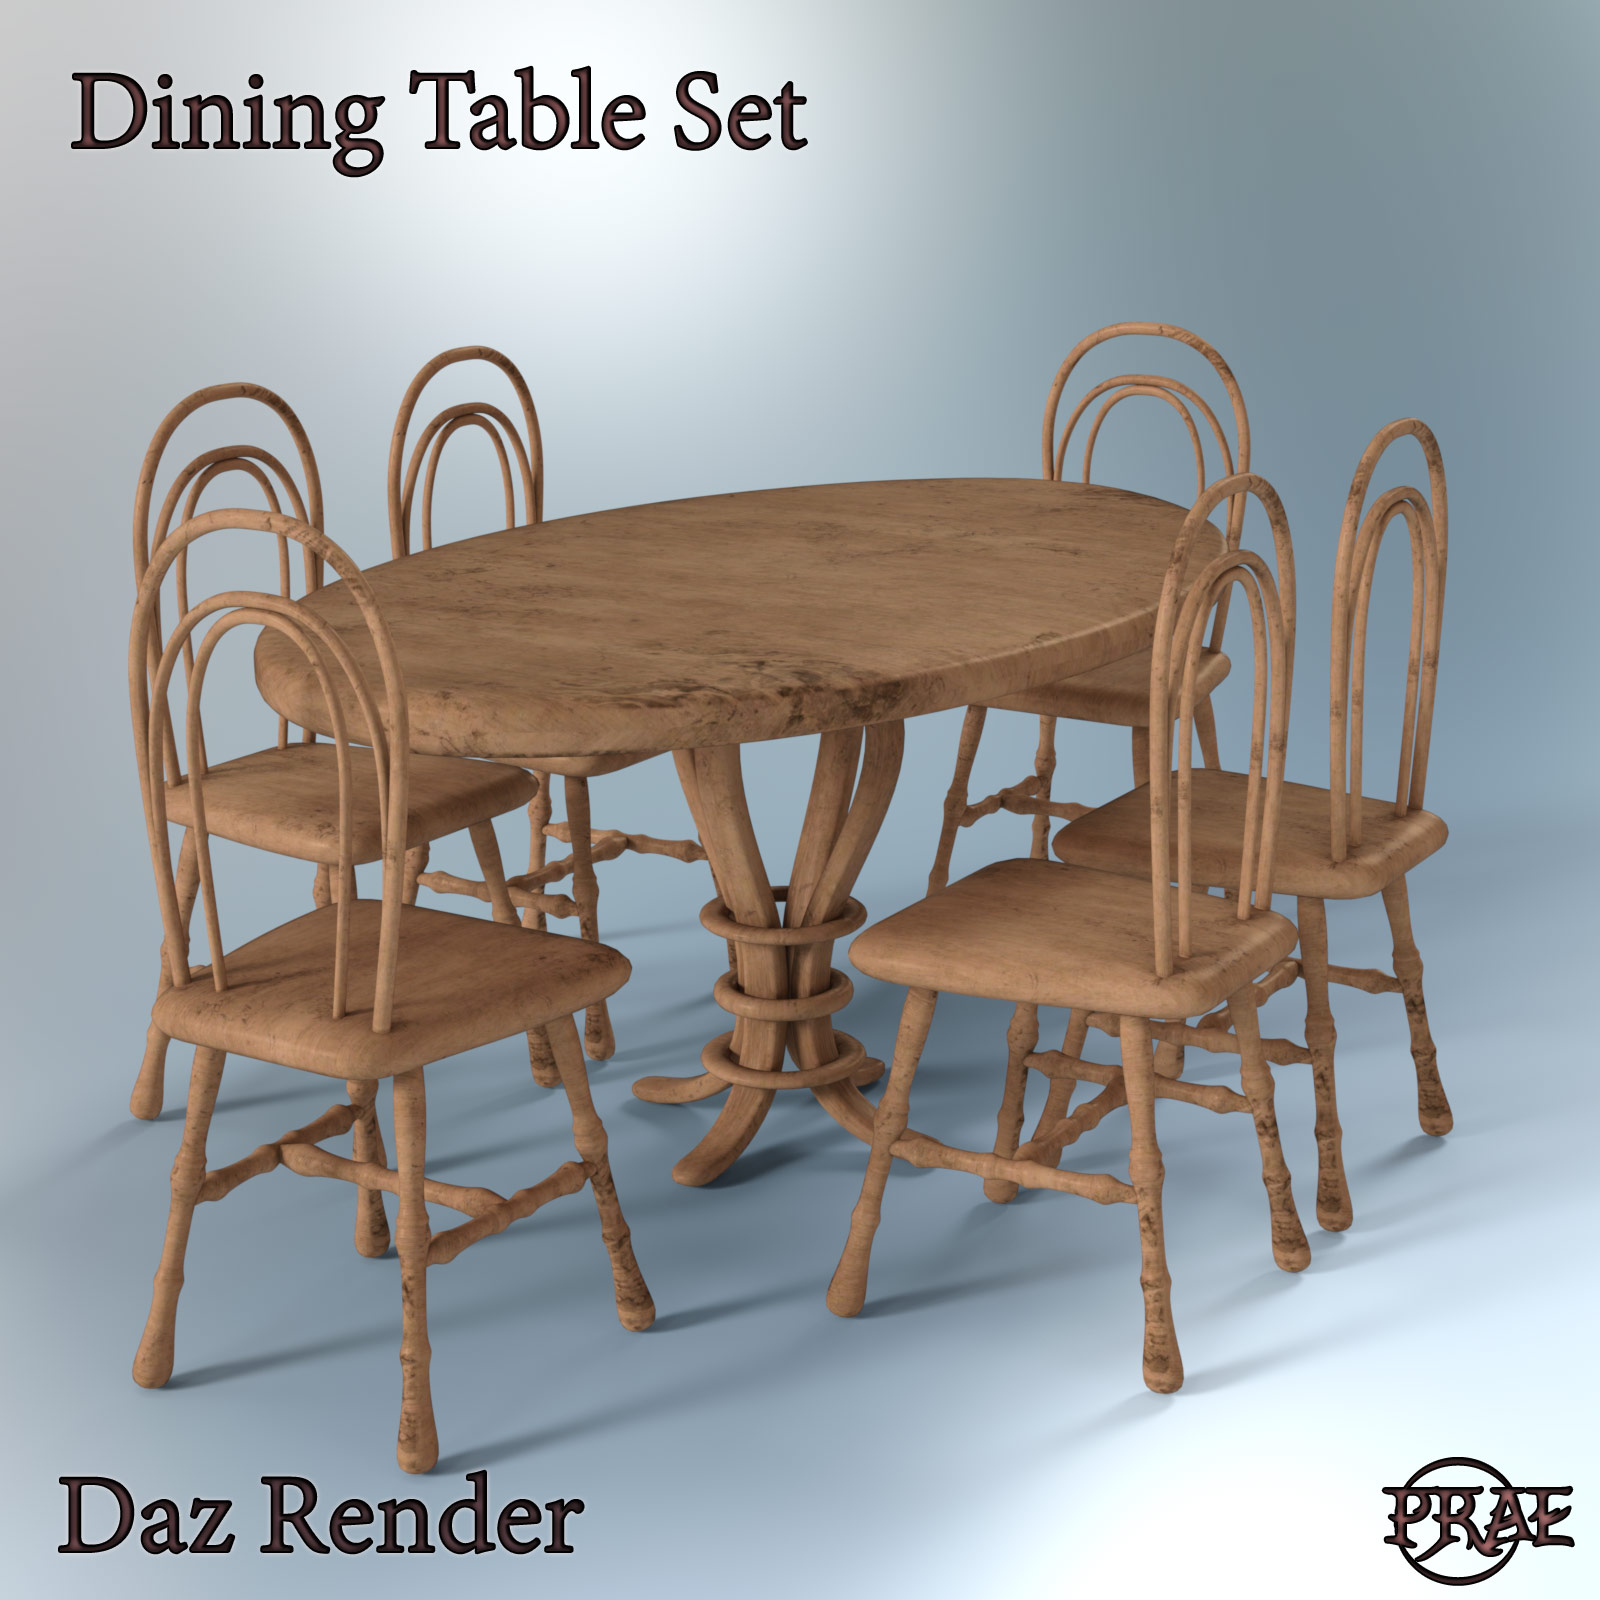 Prae-Dining Table Set EXTENDED LICENCE